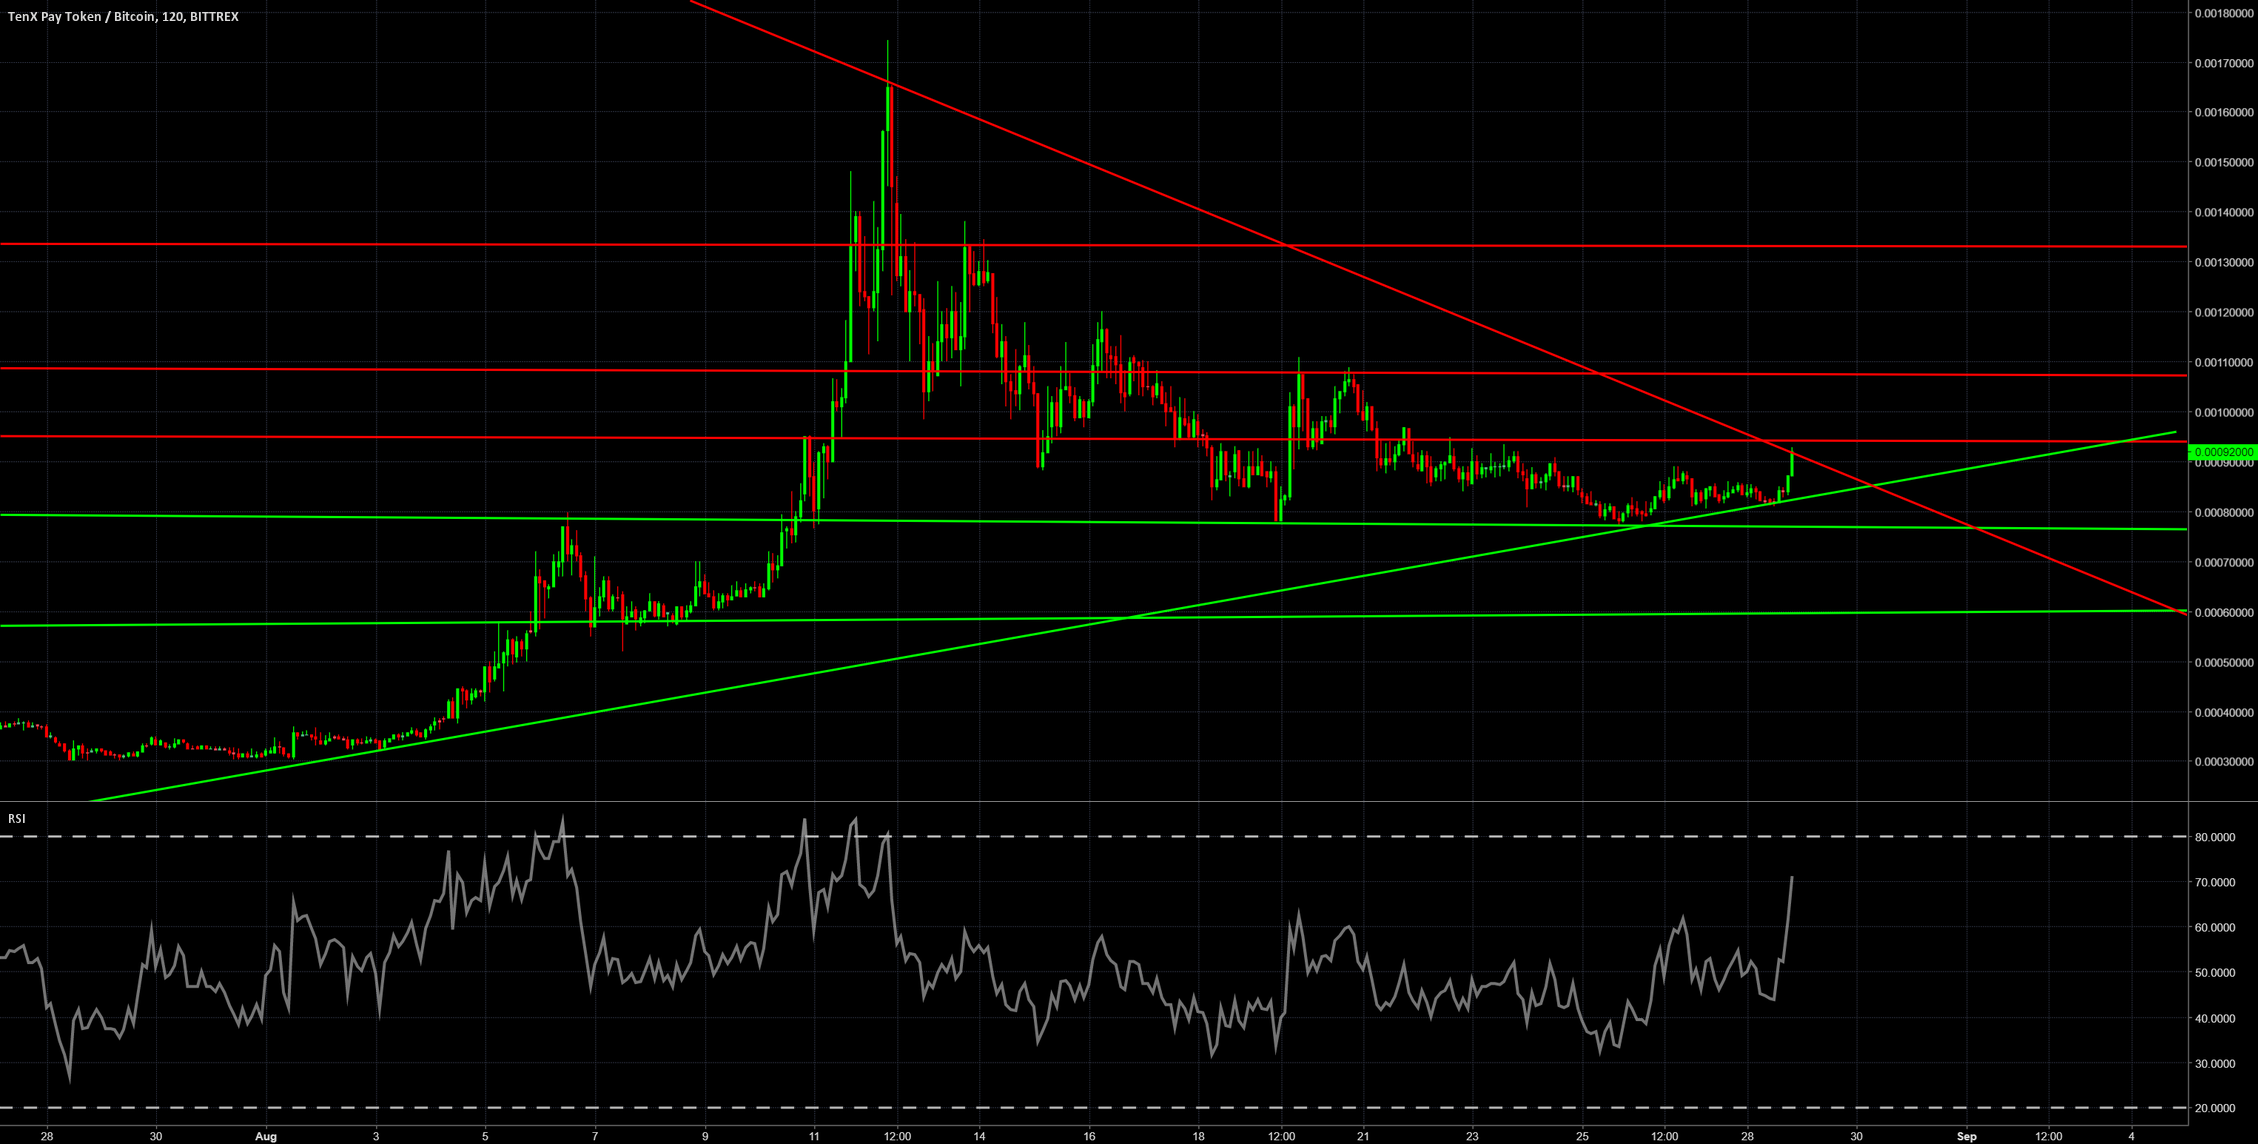 TenX (Pay) attacking Resistance